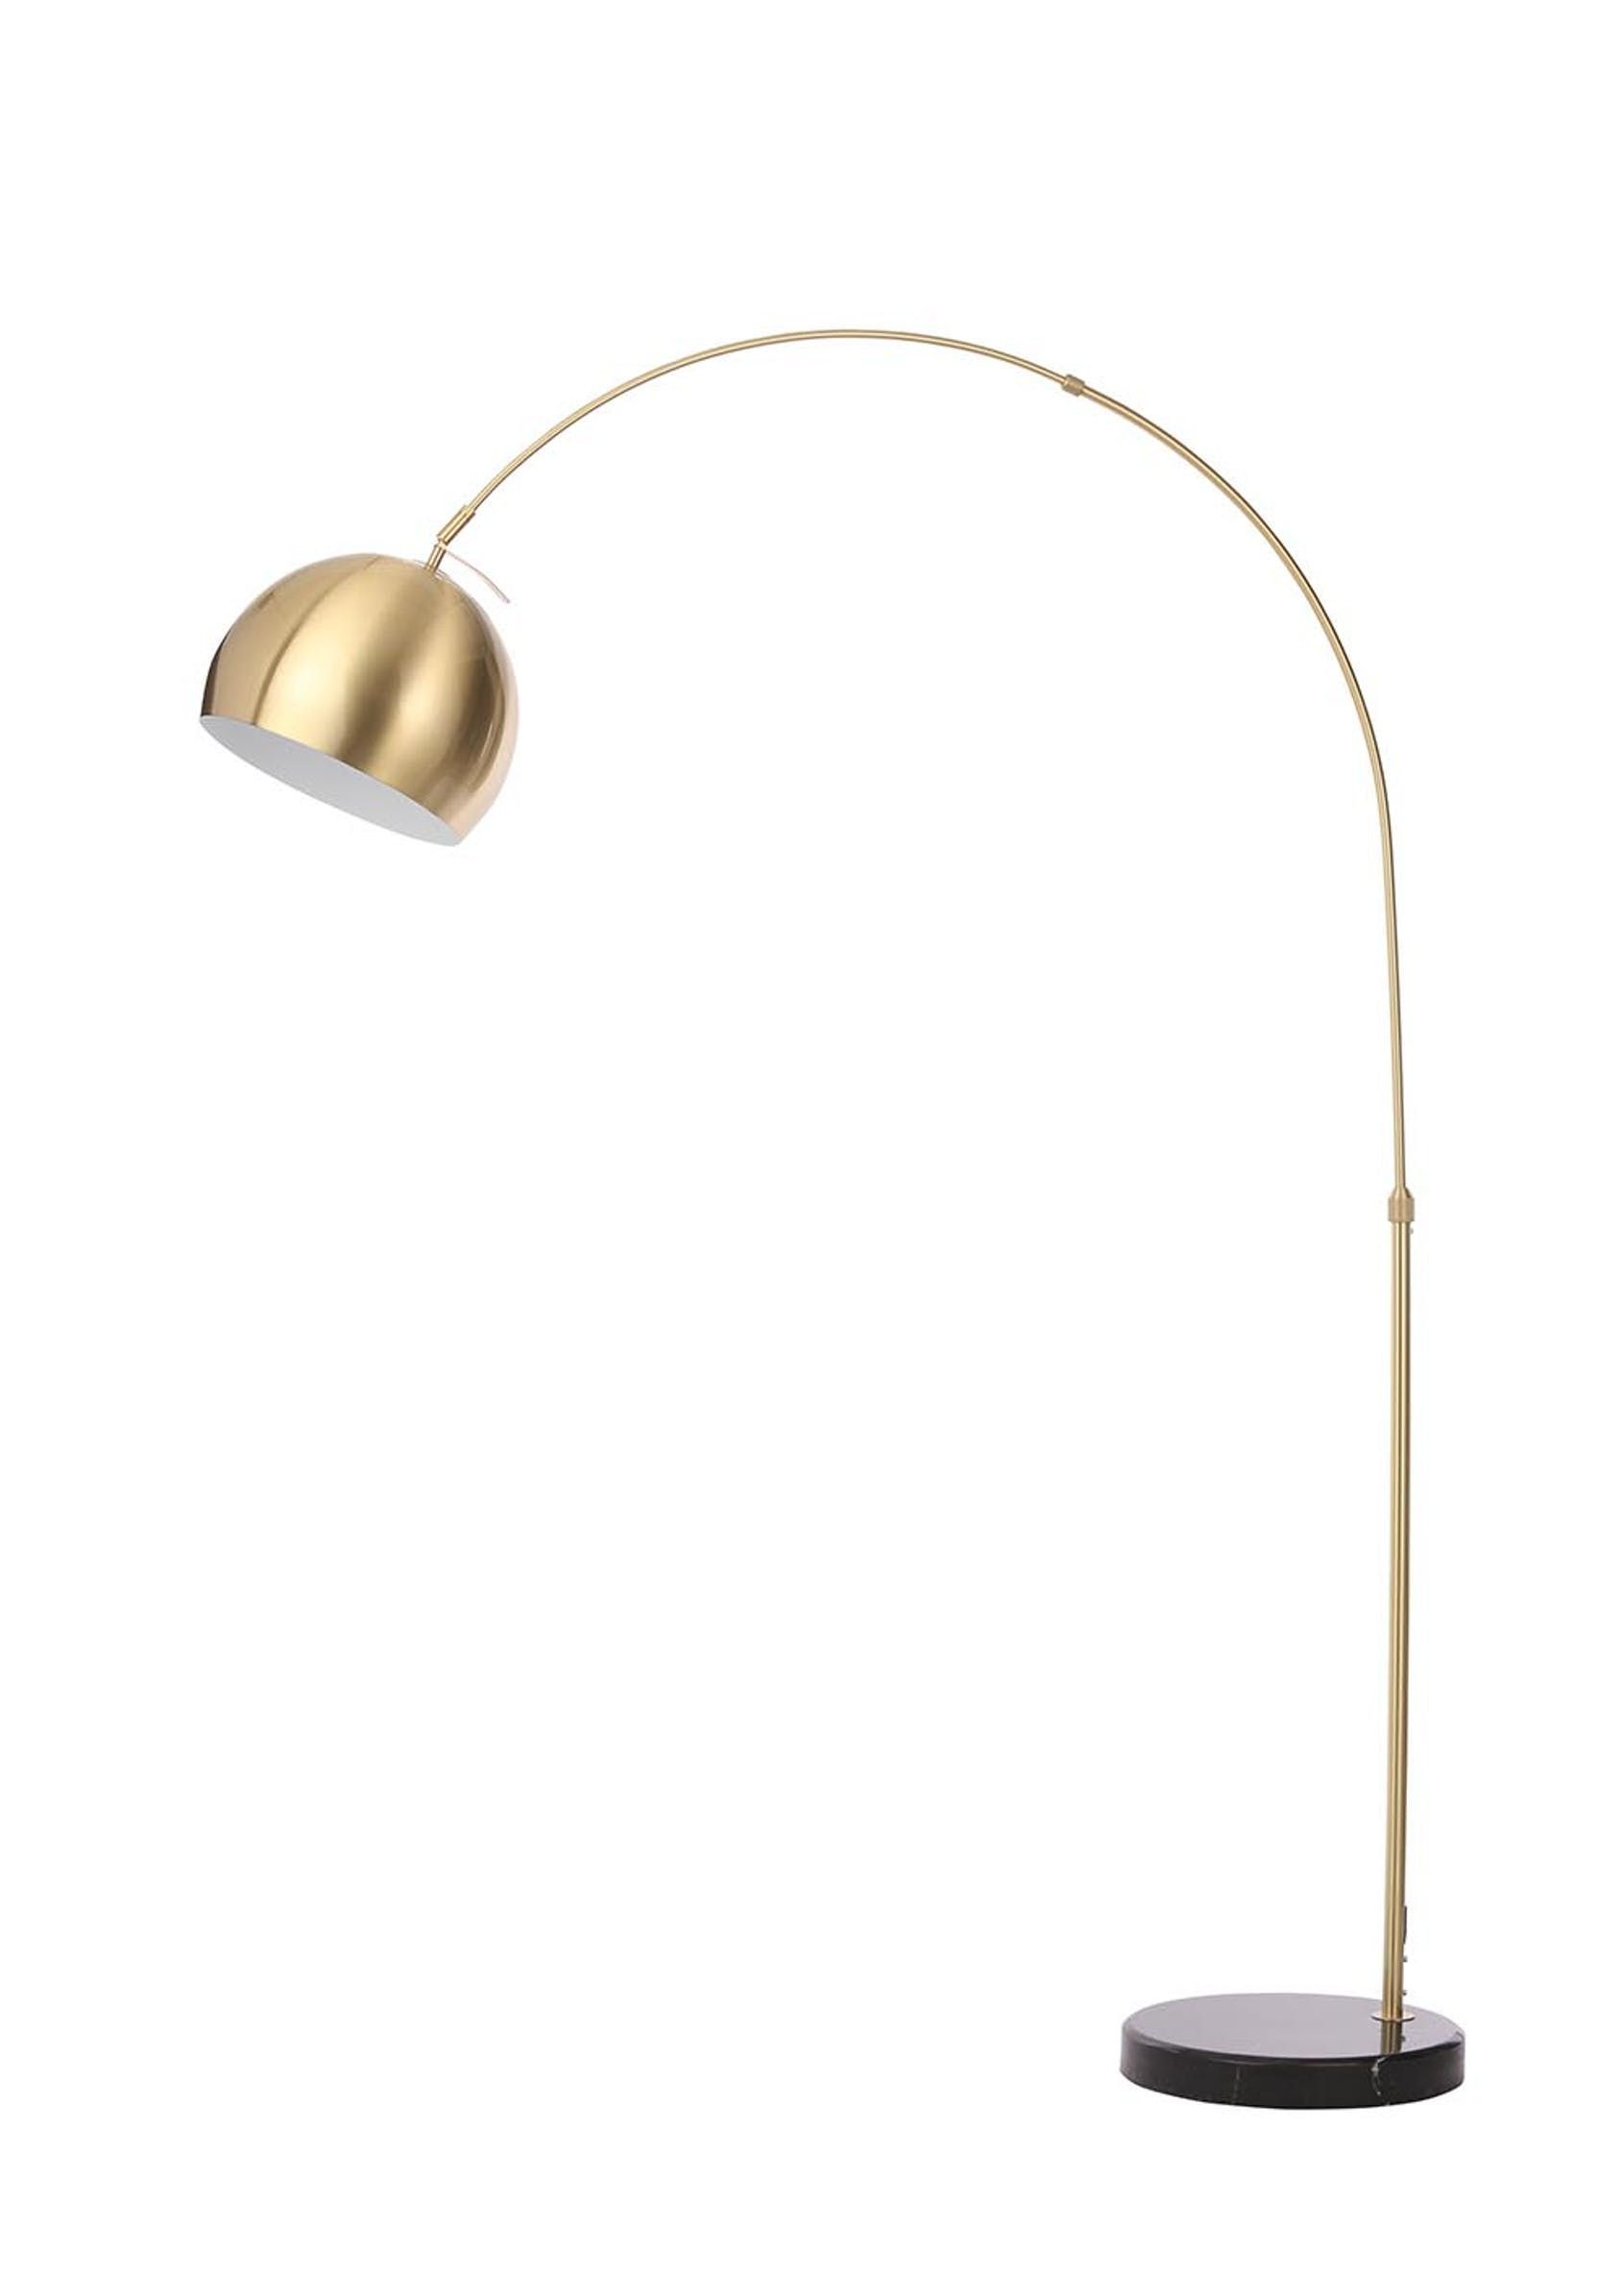 Bedroom Lamps For A Warm And Inviting Space Arc Floor Lamps